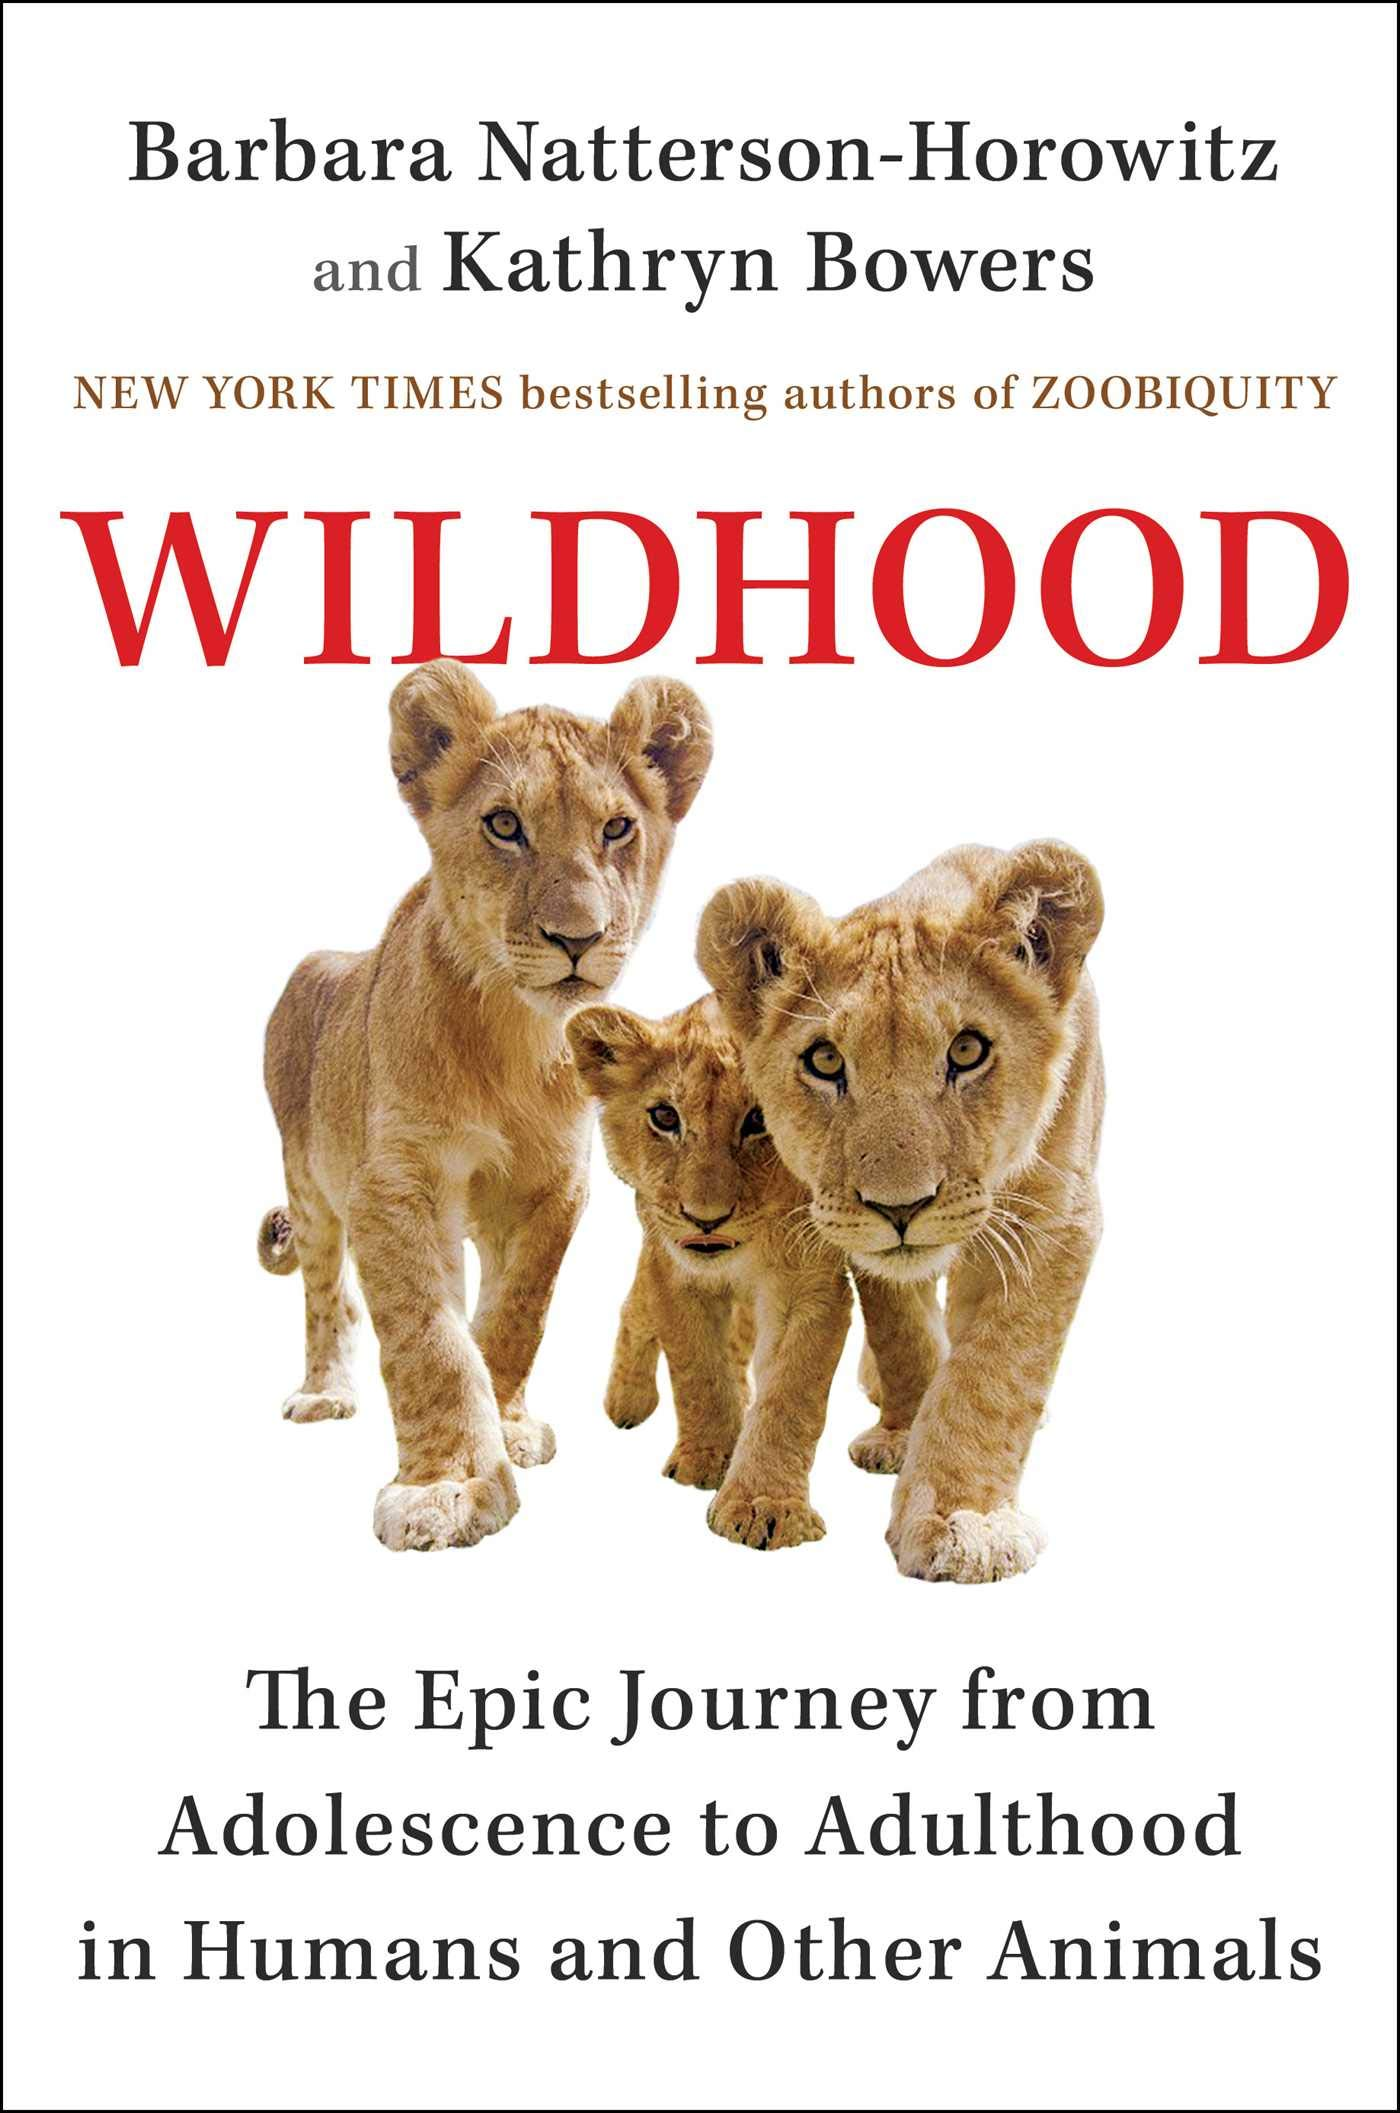 Download Wildhood: The Epic Journey from Adolescence to Adulthood in Humans and Other Animals by Dr. Barbara Natterson-Horowitz